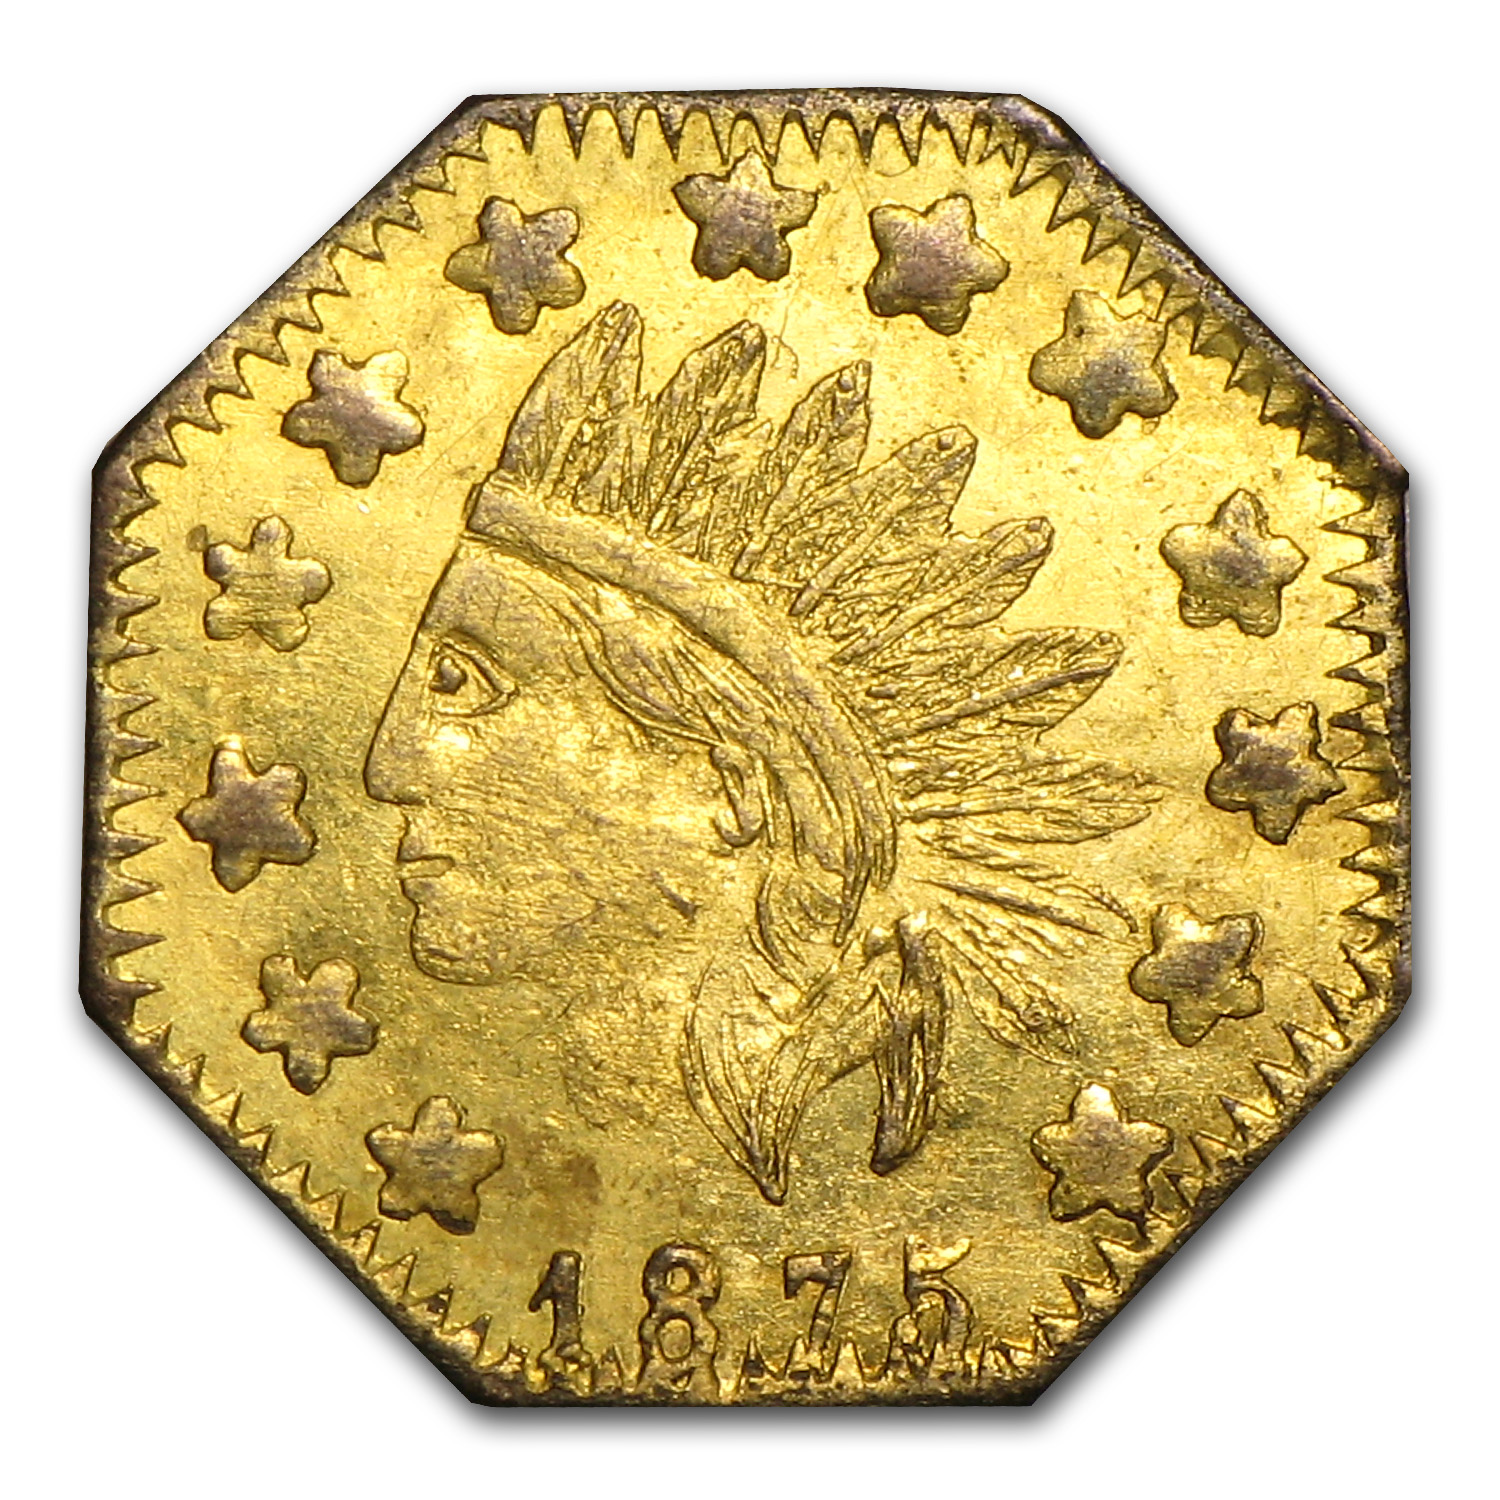 1875 Indian Octagonal Gold Token Au 58 California